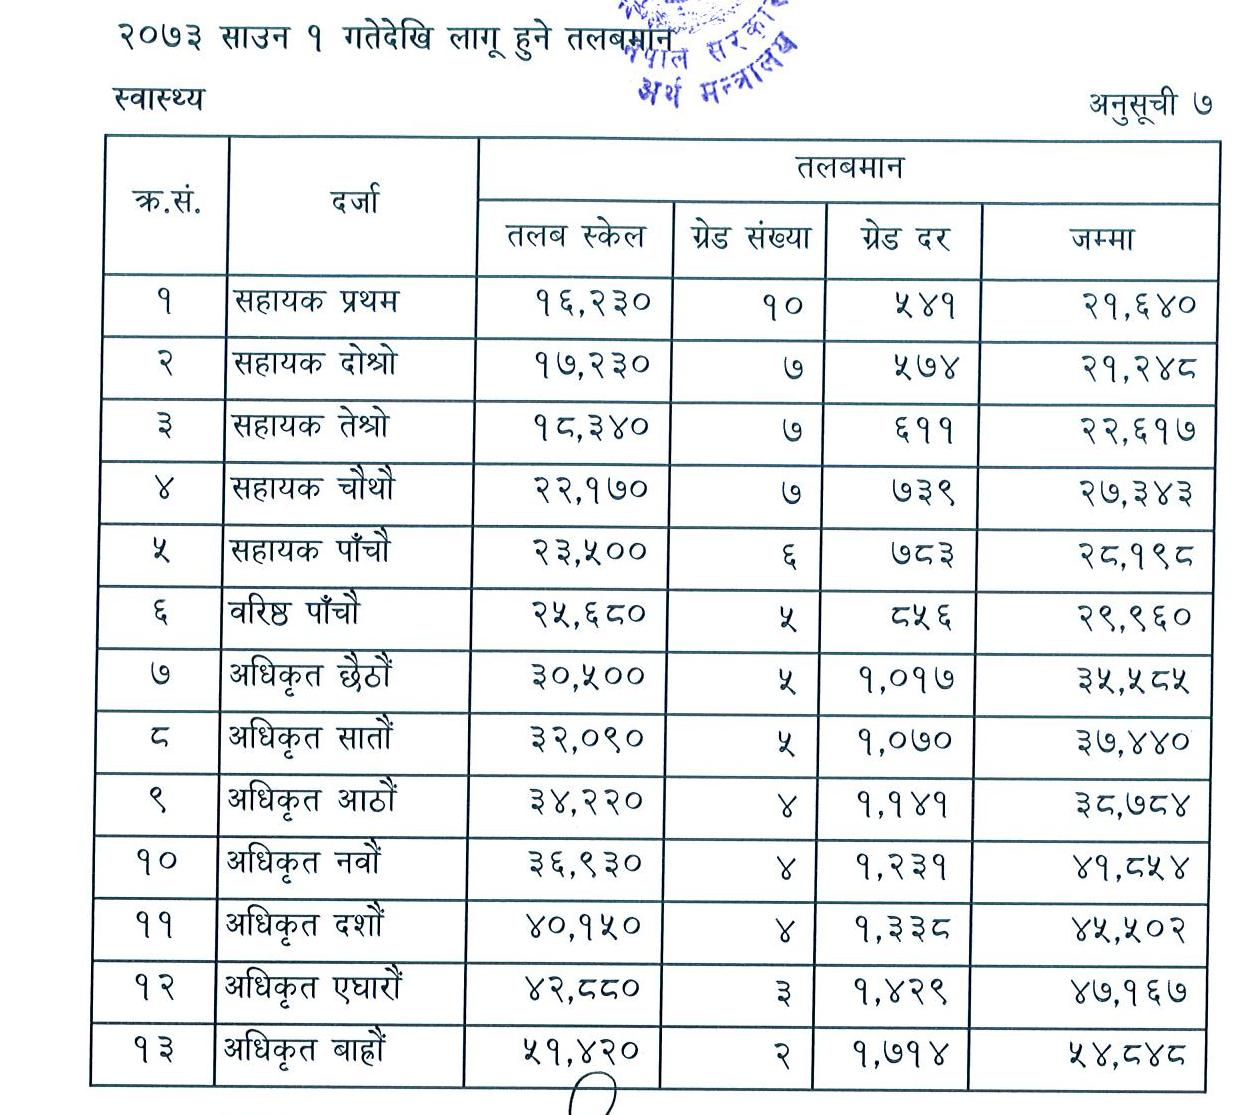 Level and Positions of Health Cadres and their Salary in Nepal